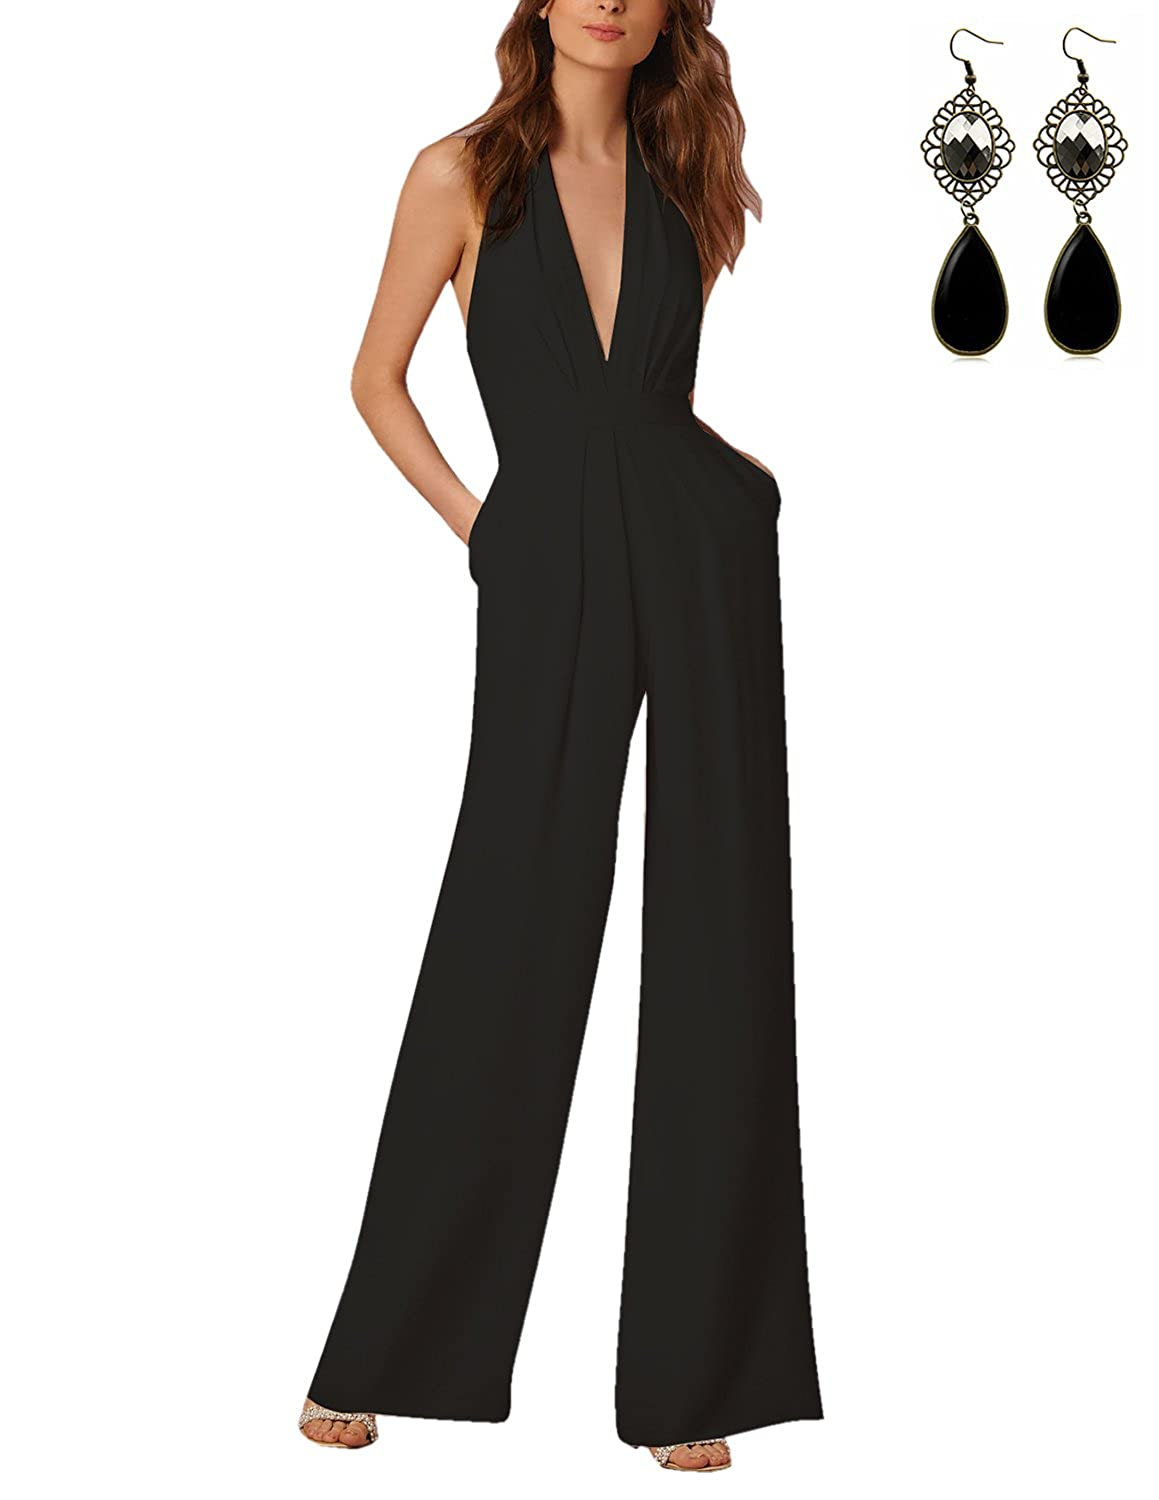 6a0bdbc8224b Top 10 wholesale Affordable Rompers And Jumpsuits - Chinabrands.com